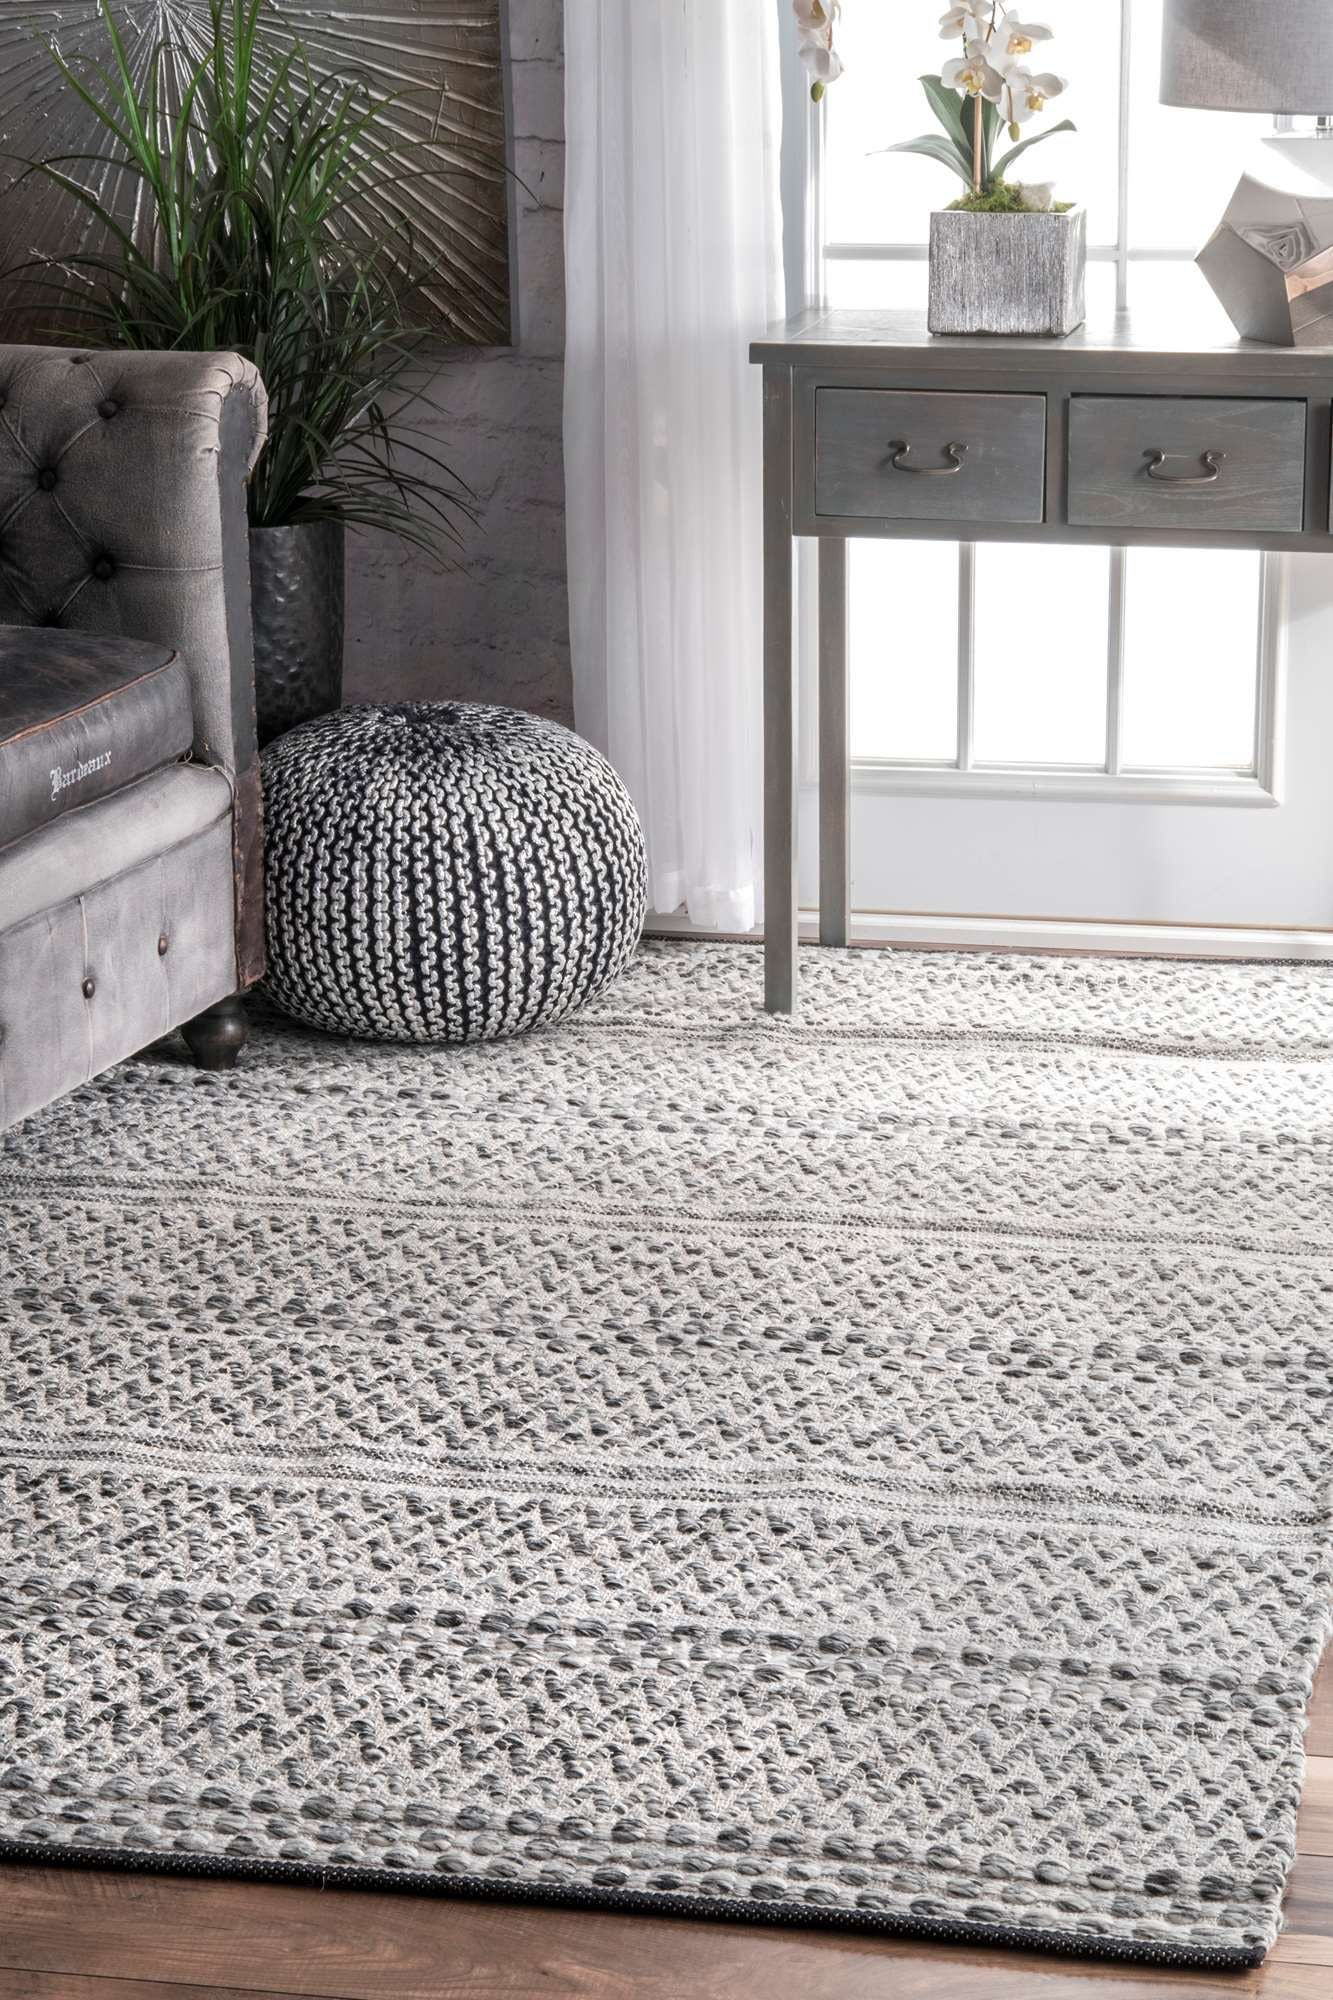 The Prettiest Outdoor Rugs You Ll Actually Want To Use Indoors Area Room Rugs Rugs In Living Room Farmhouse Area Rugs